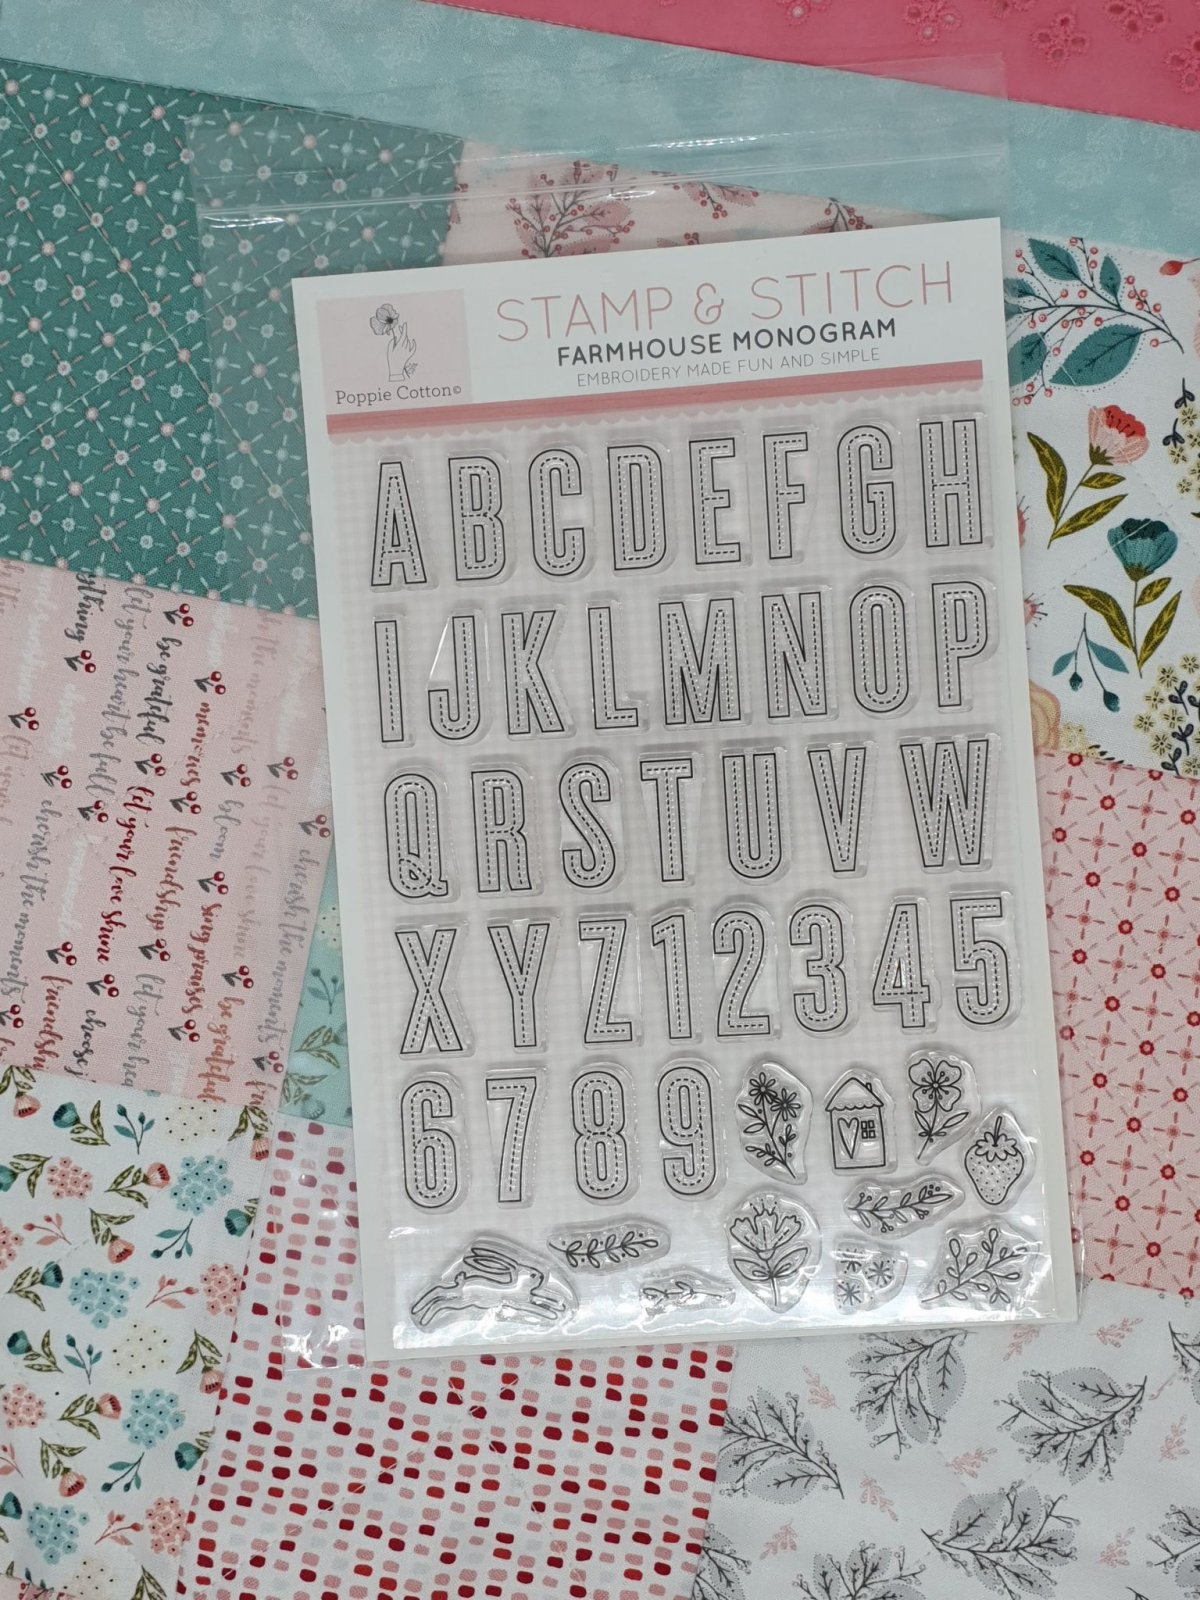 Stamp & Stitch, Farmhouse Monogram Collection